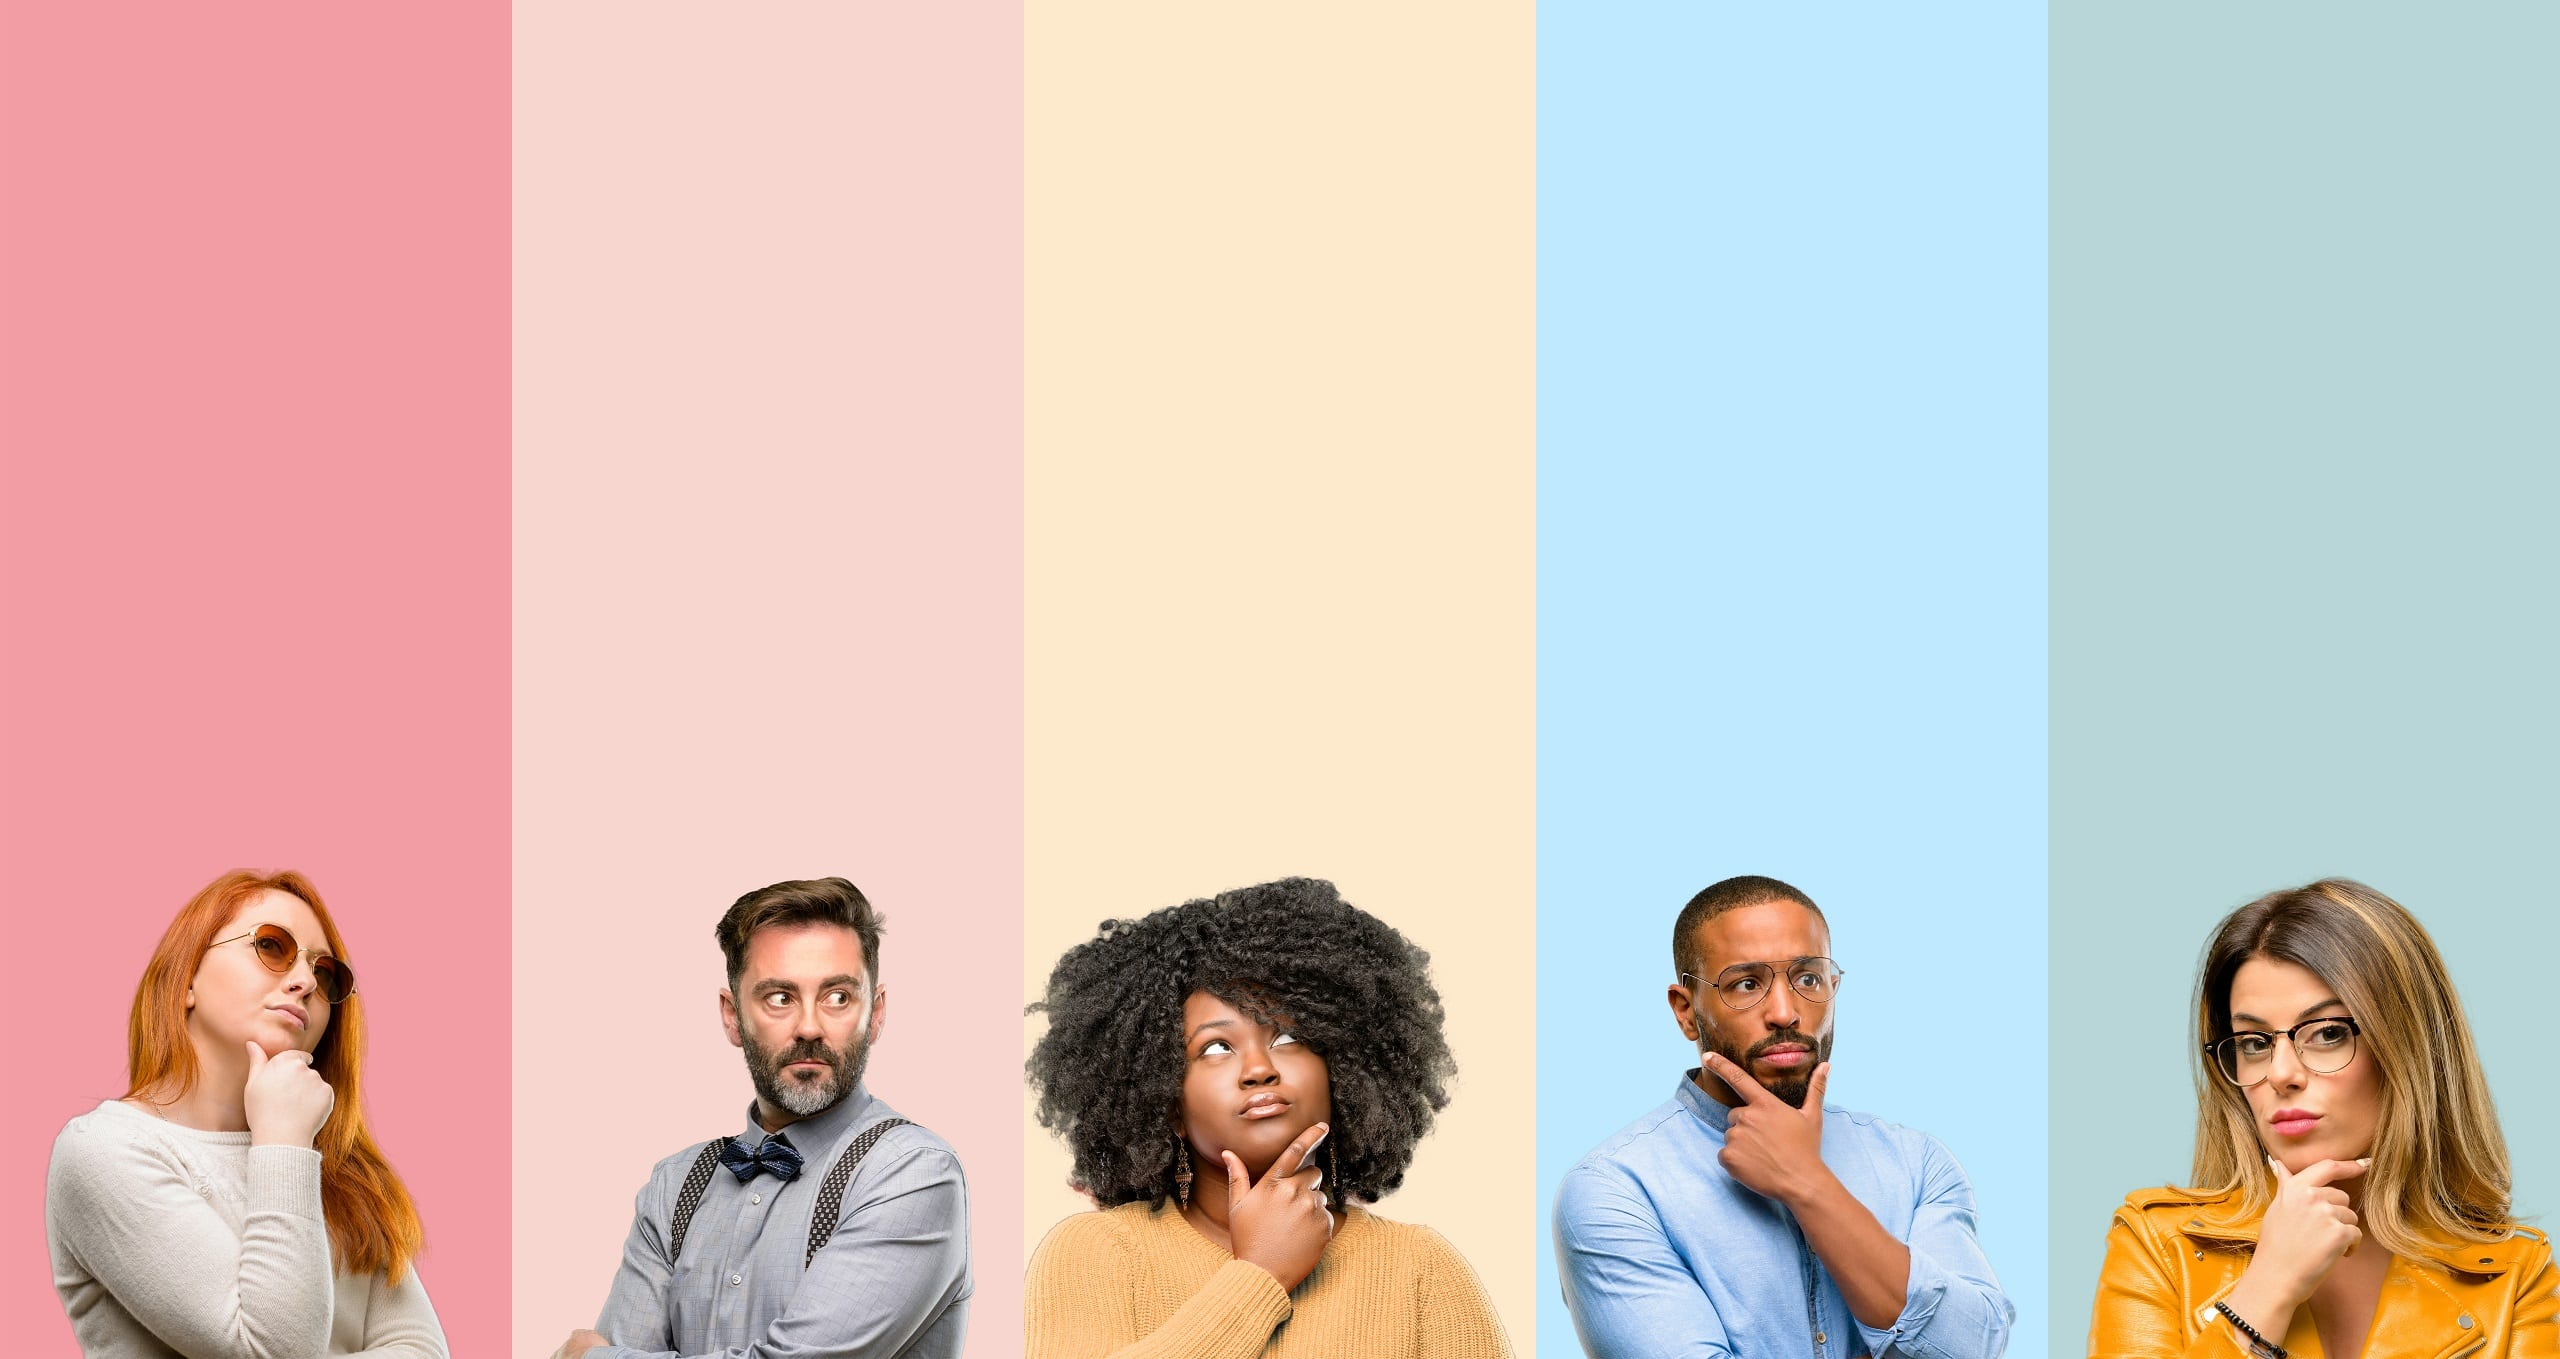 A diverse group of people in the process of thinking over a colorful background.